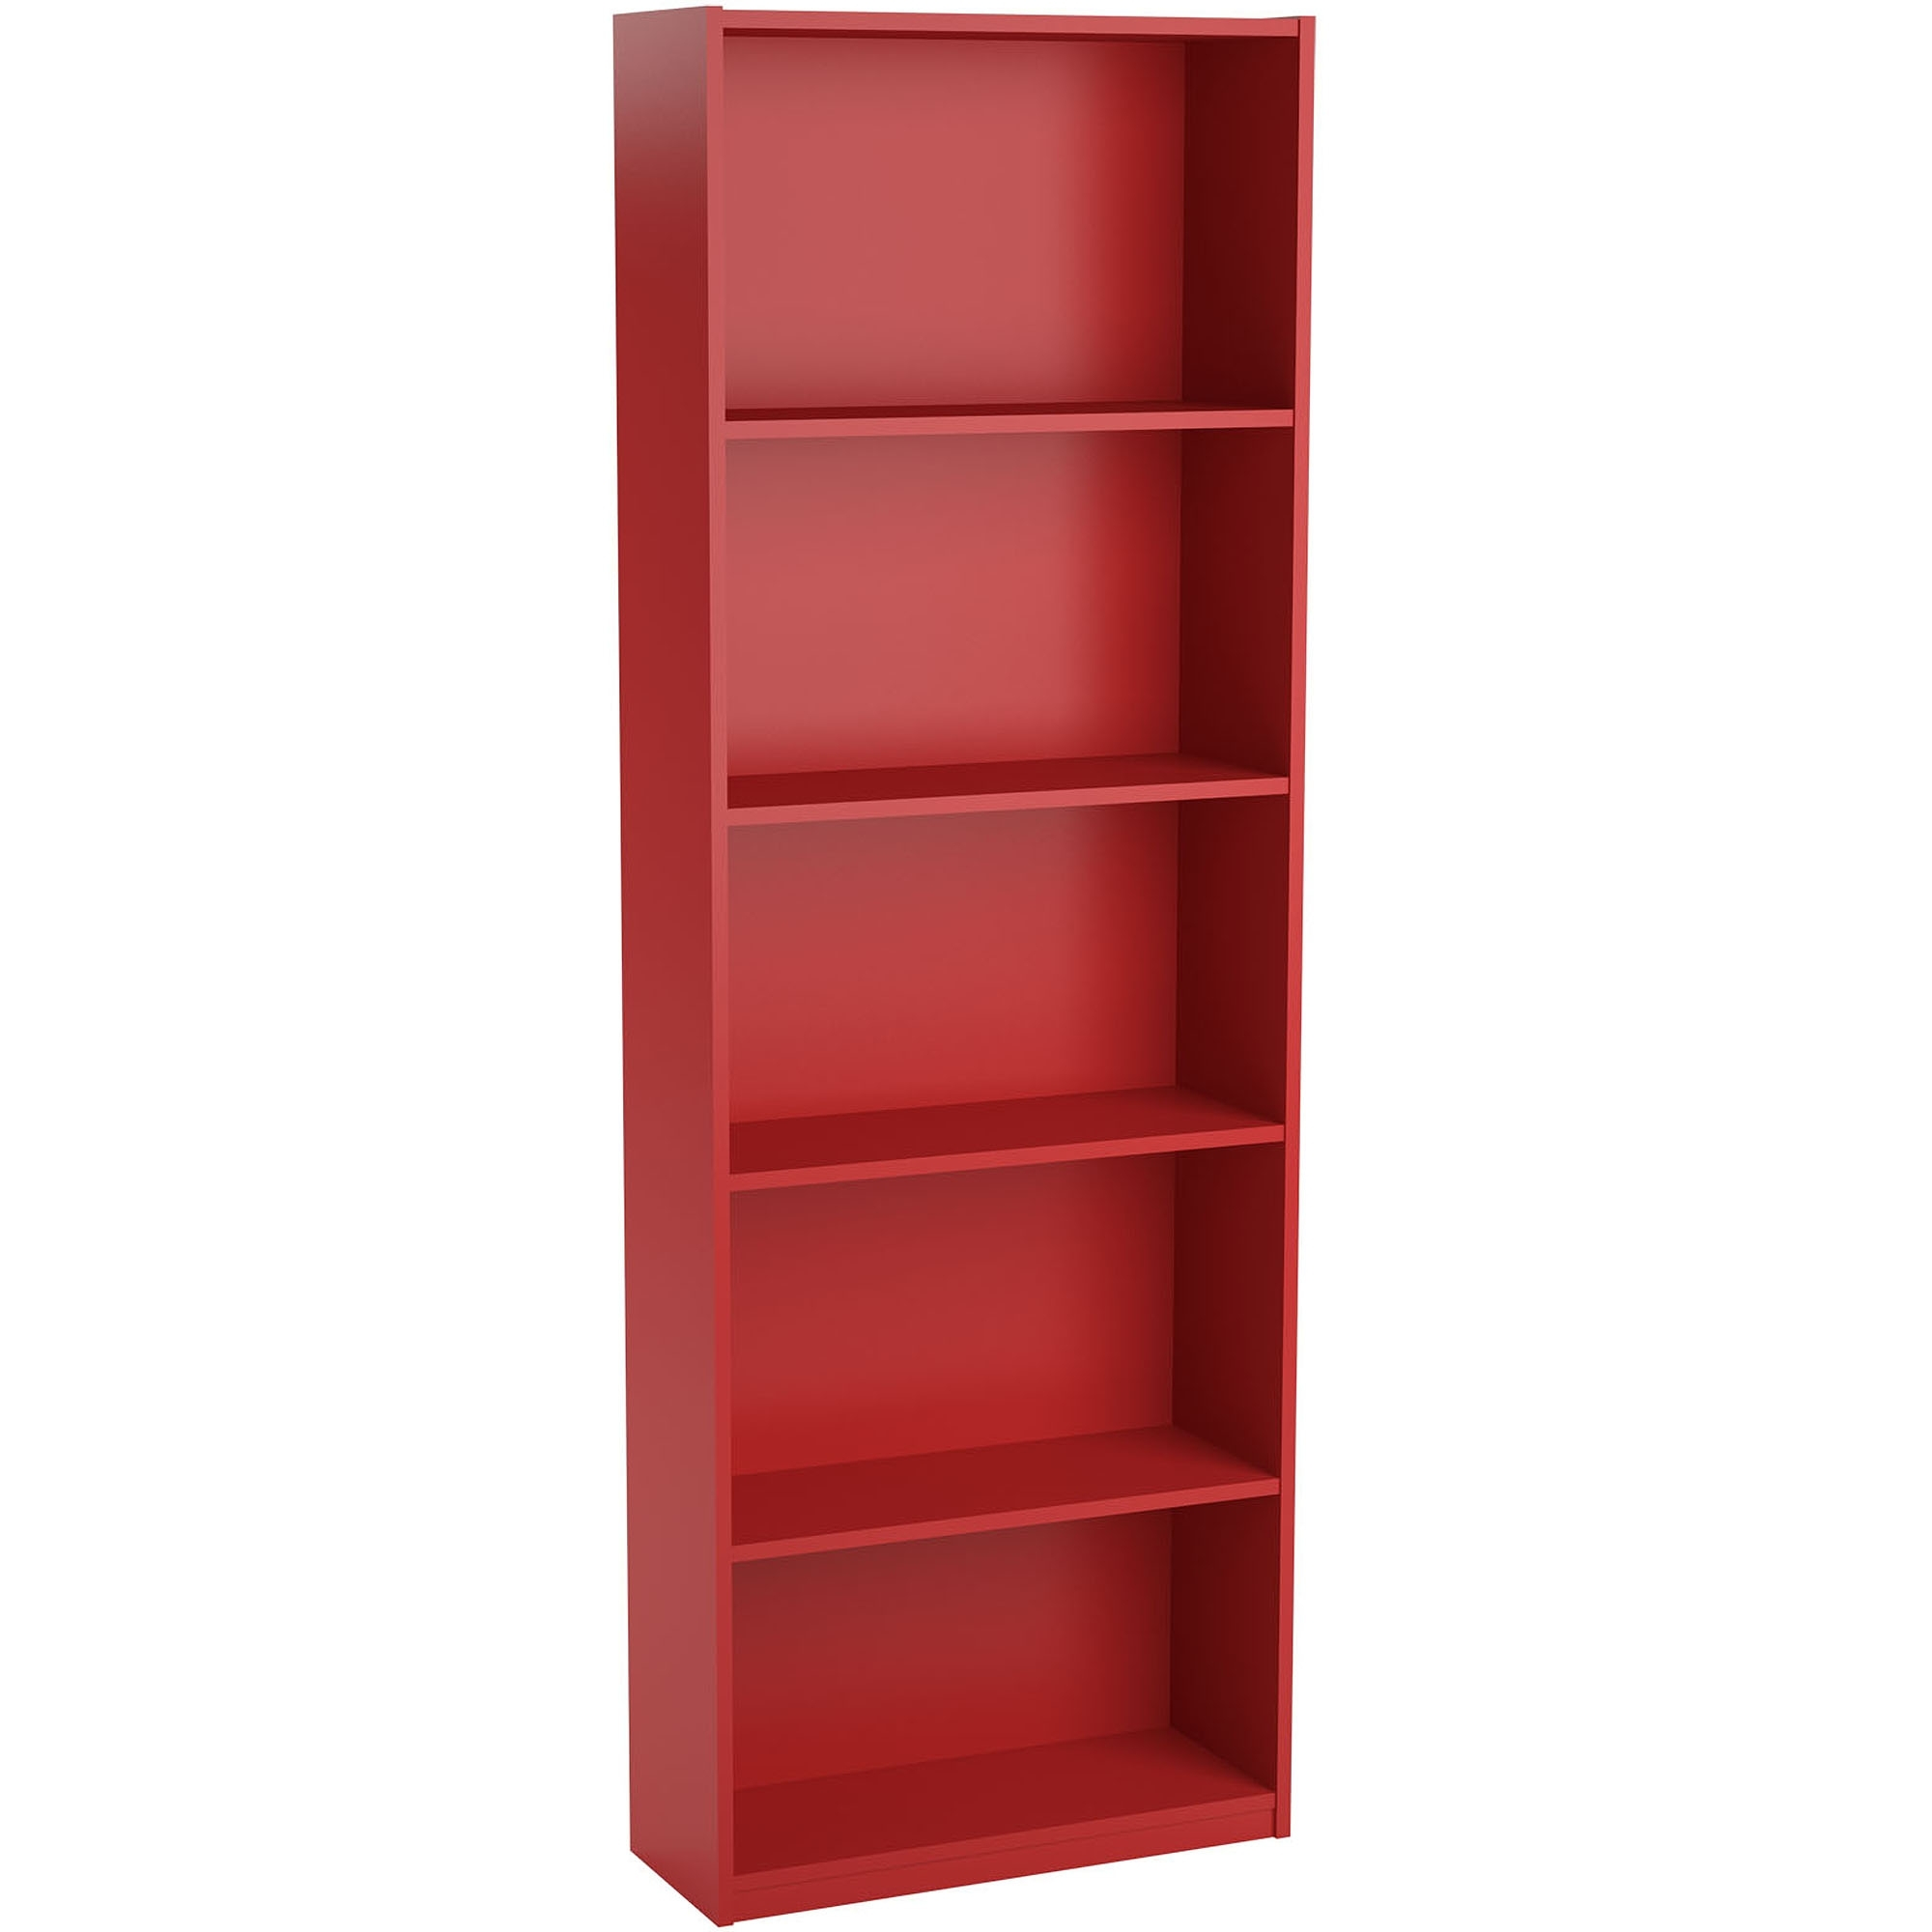 Furniture Home: Impressive Red Bookcases Picture Concept Ameriwood With Regard To Favorite Red Bookcases (View 7 of 15)